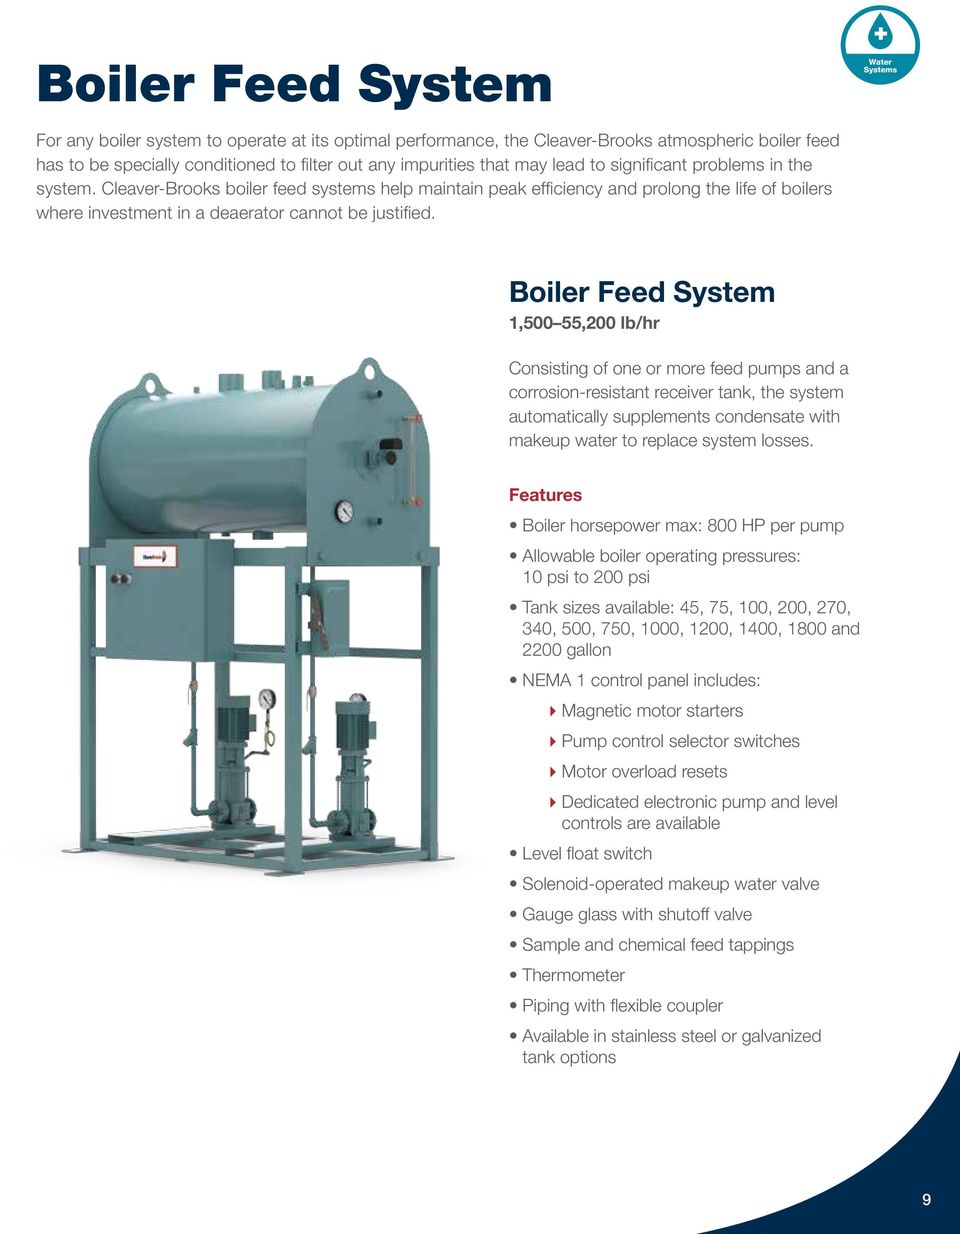 Cleaver-Brooks boiler feed systems help maintain peak efficiency and prolong the life of boilers where investment in a deaerator cannot be justified.